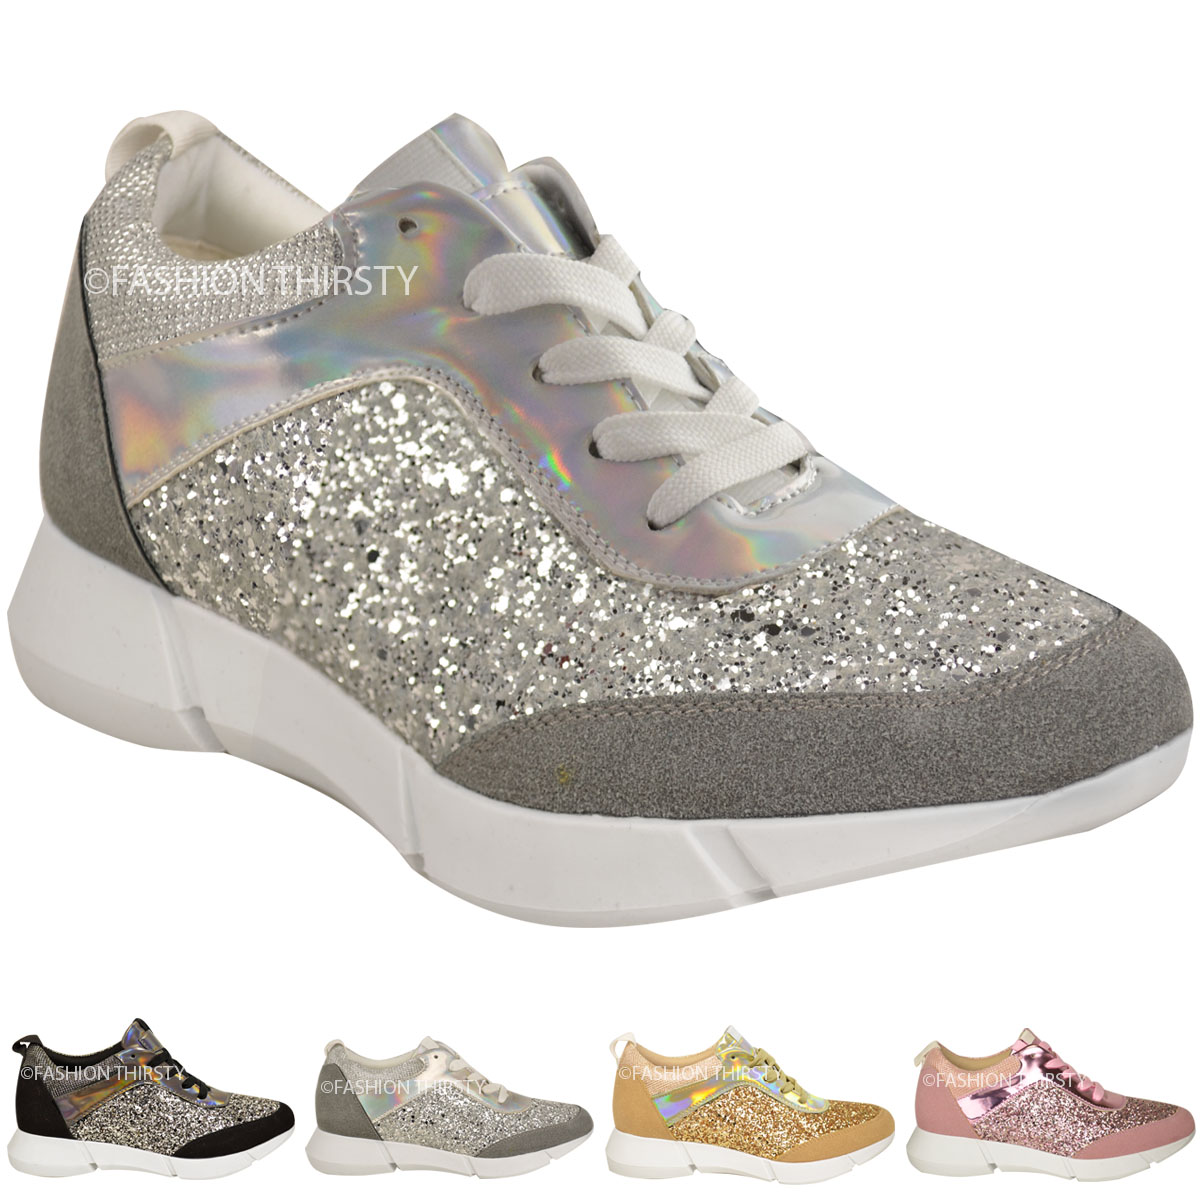 WOMENS LADIES GLITTER TRAINERS SNEAKERS FASHION CASUAL GYM SPORT FITNESS SIZE | eBay